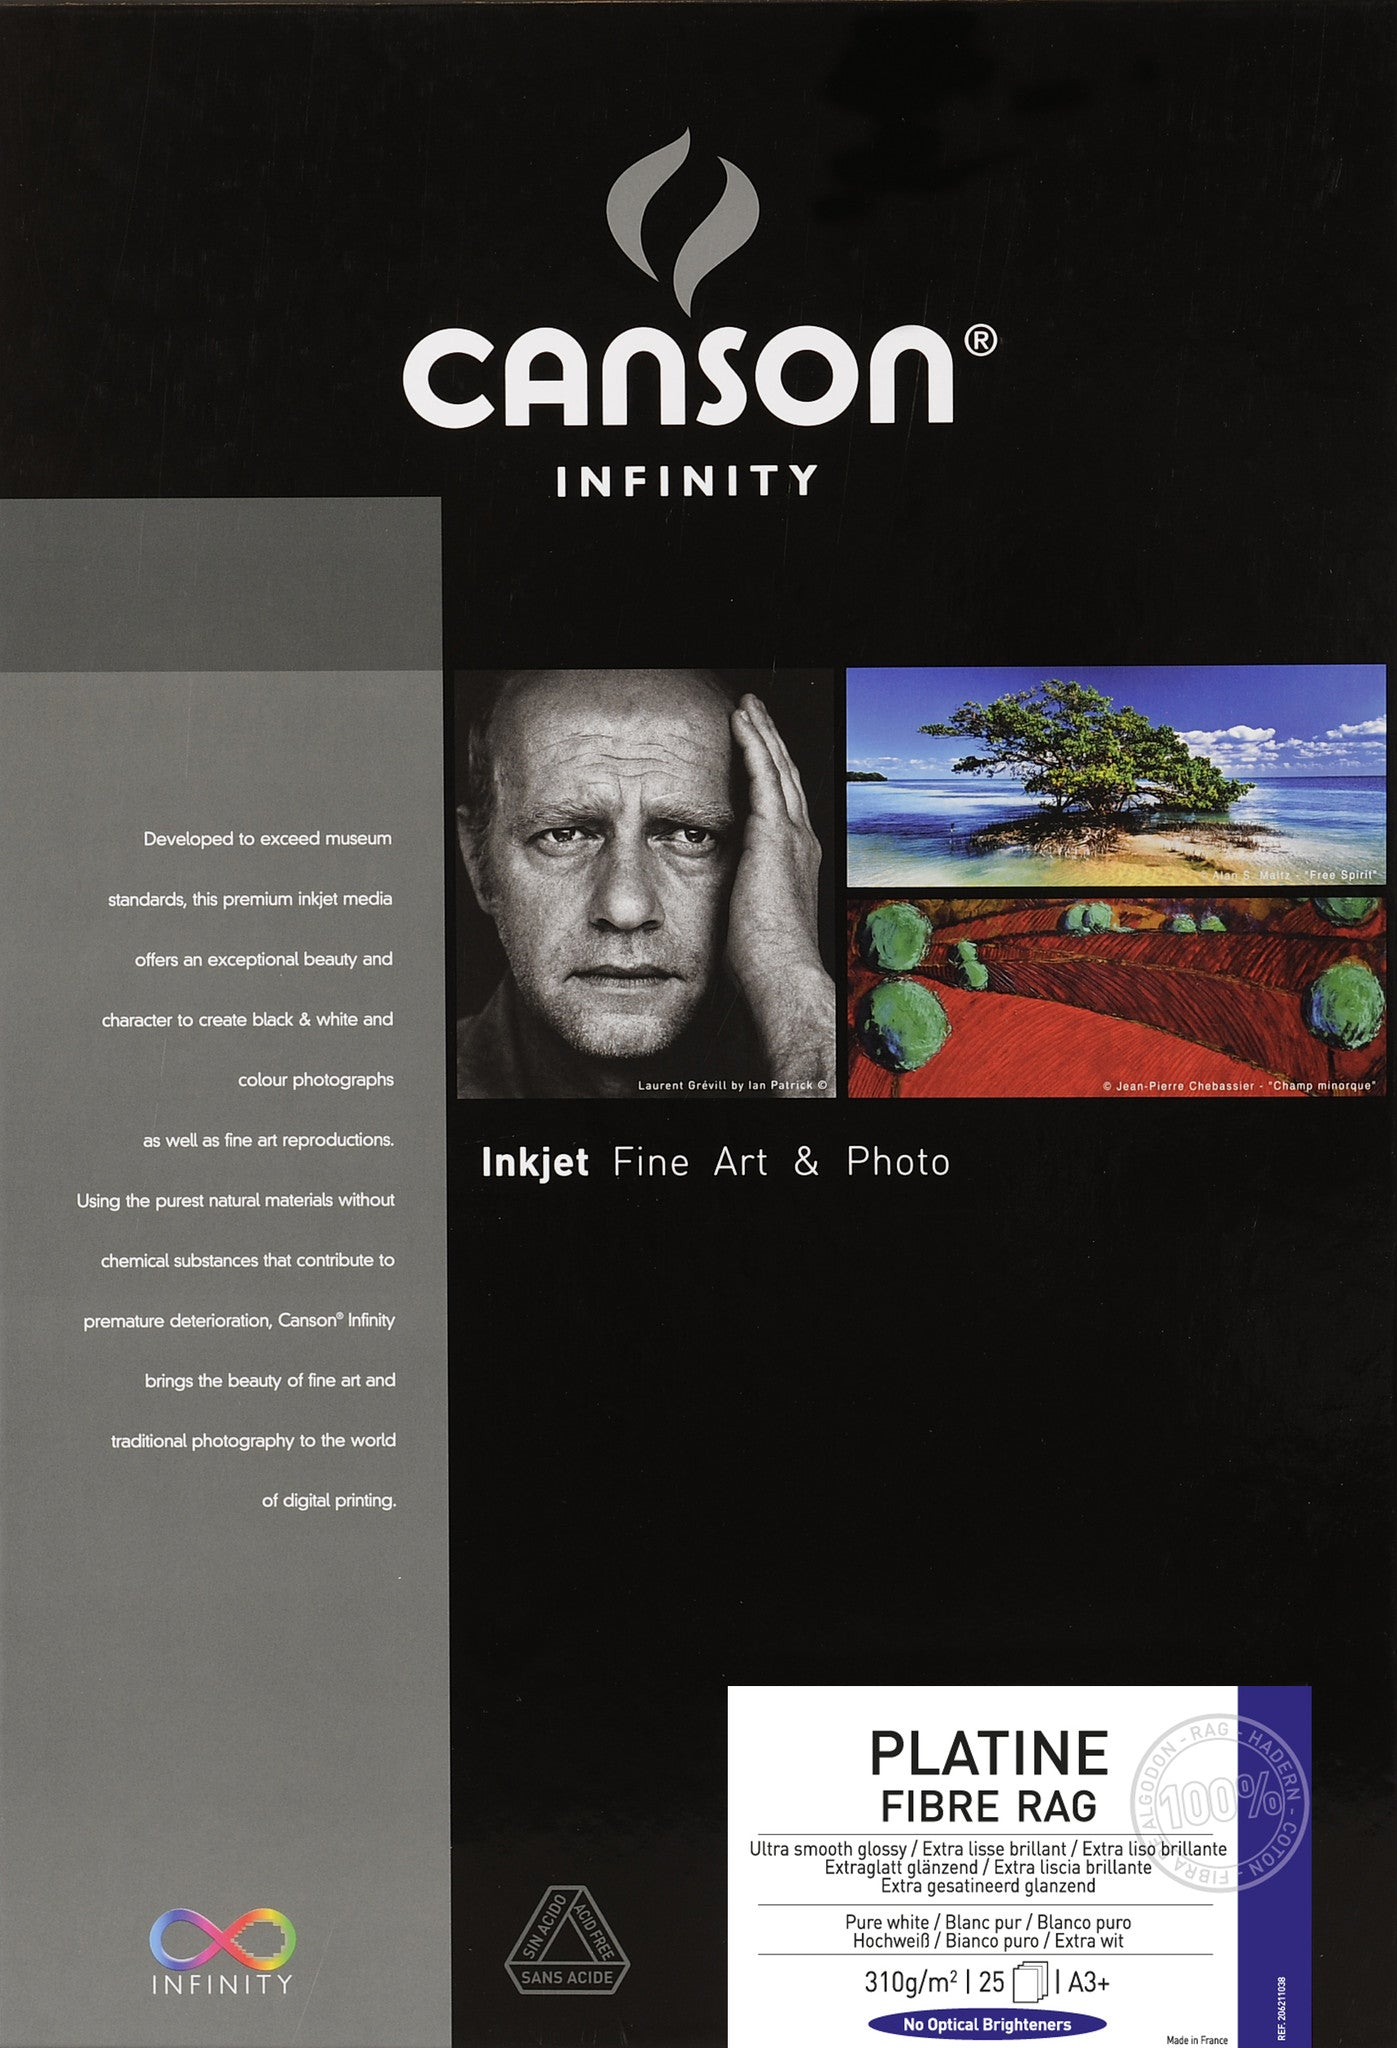 Canson Infinity Platine Fibre Rag - 310gsm - A3+ (25 sheets) - Wall Your Photos